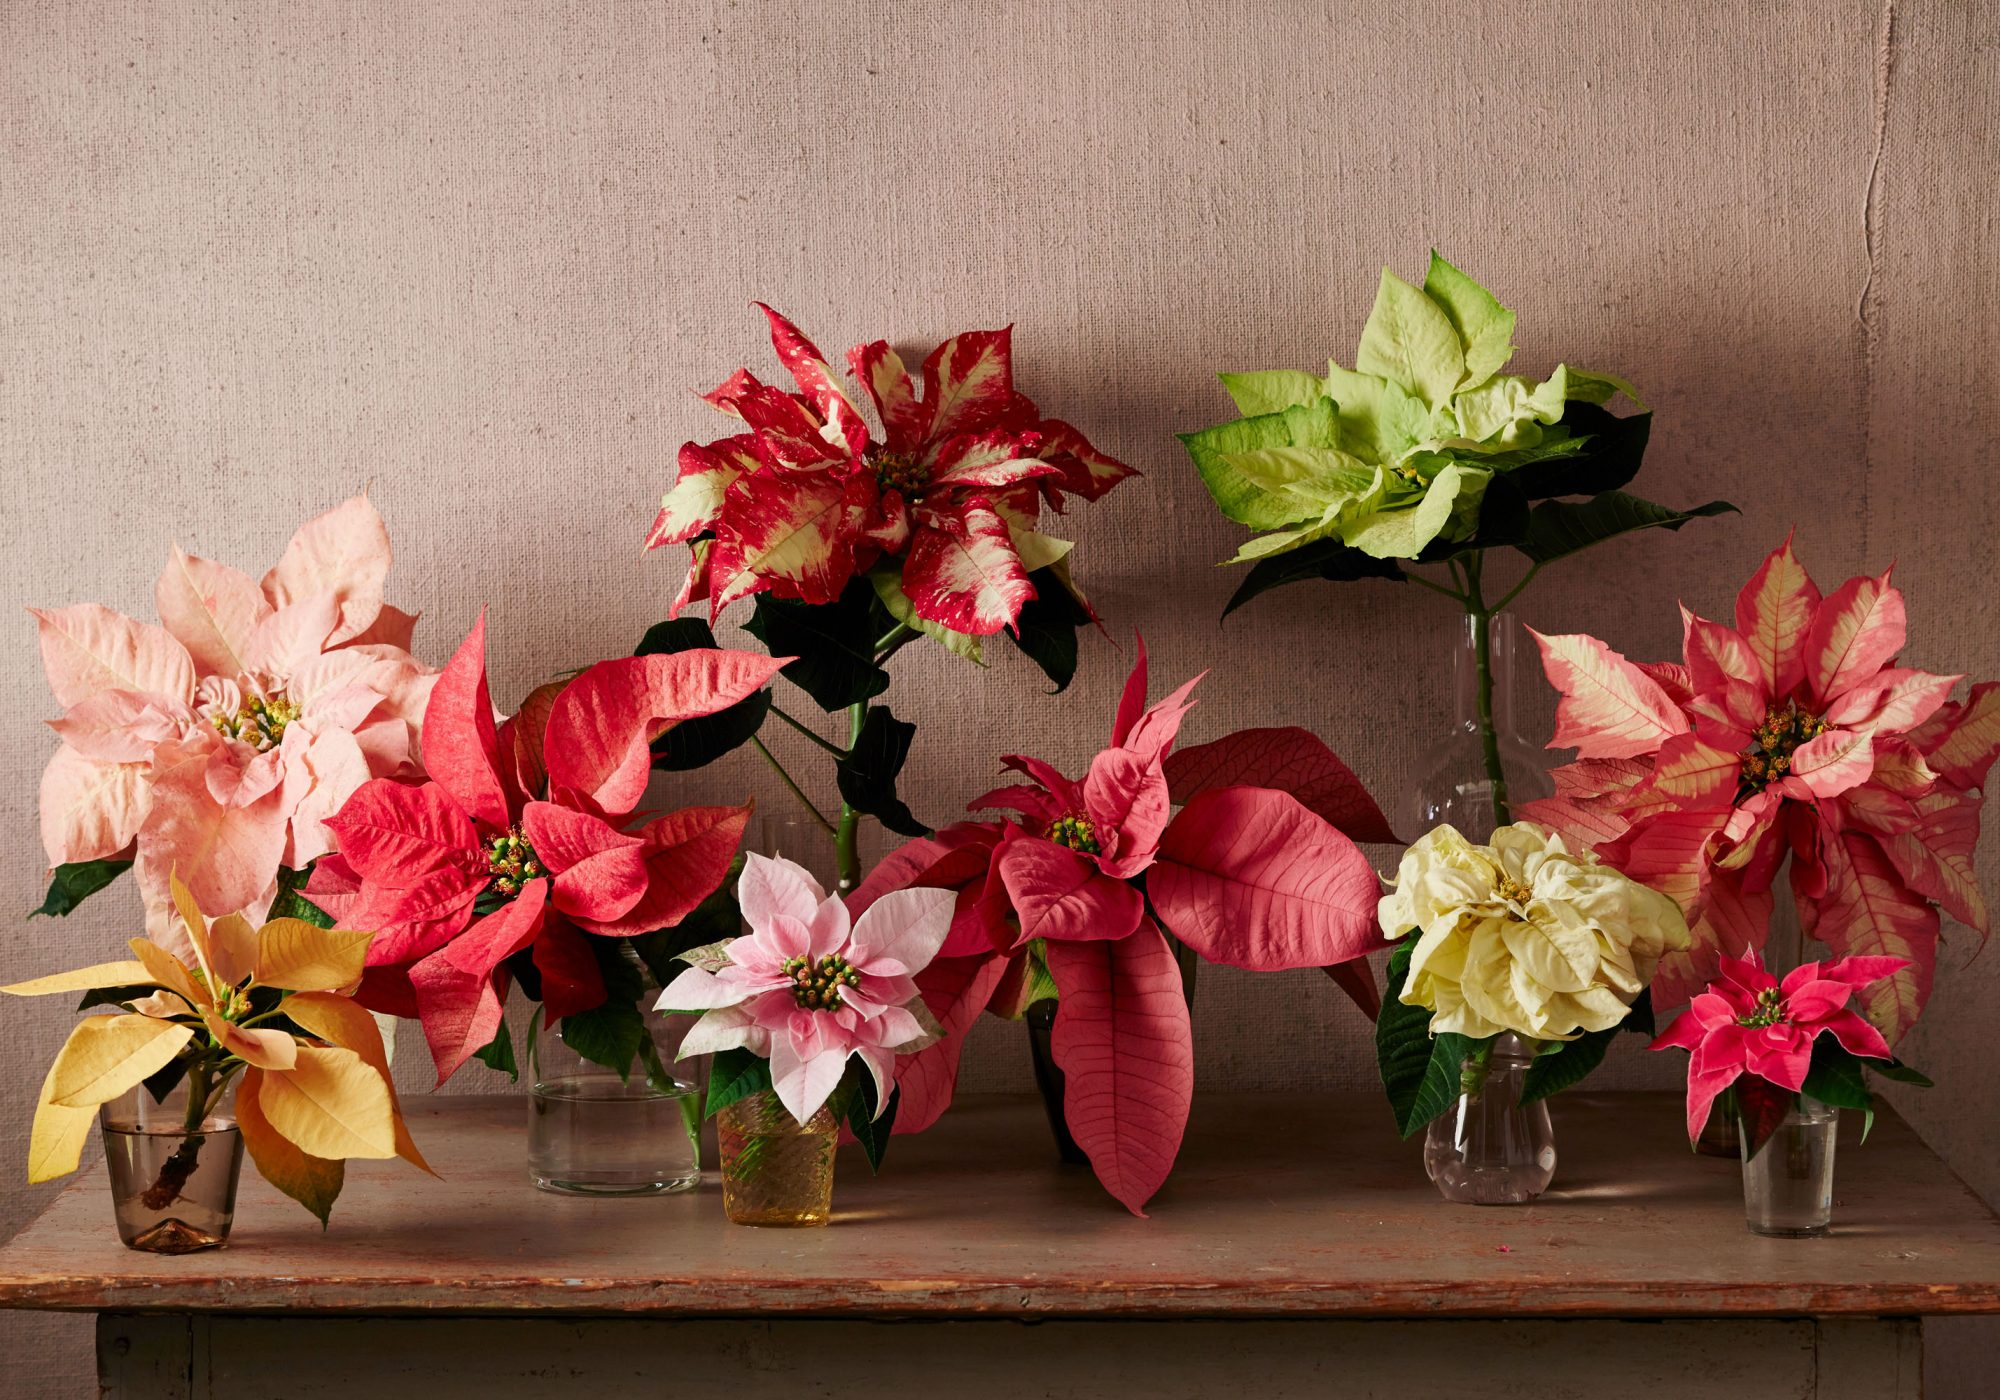 Colorful holiday plants